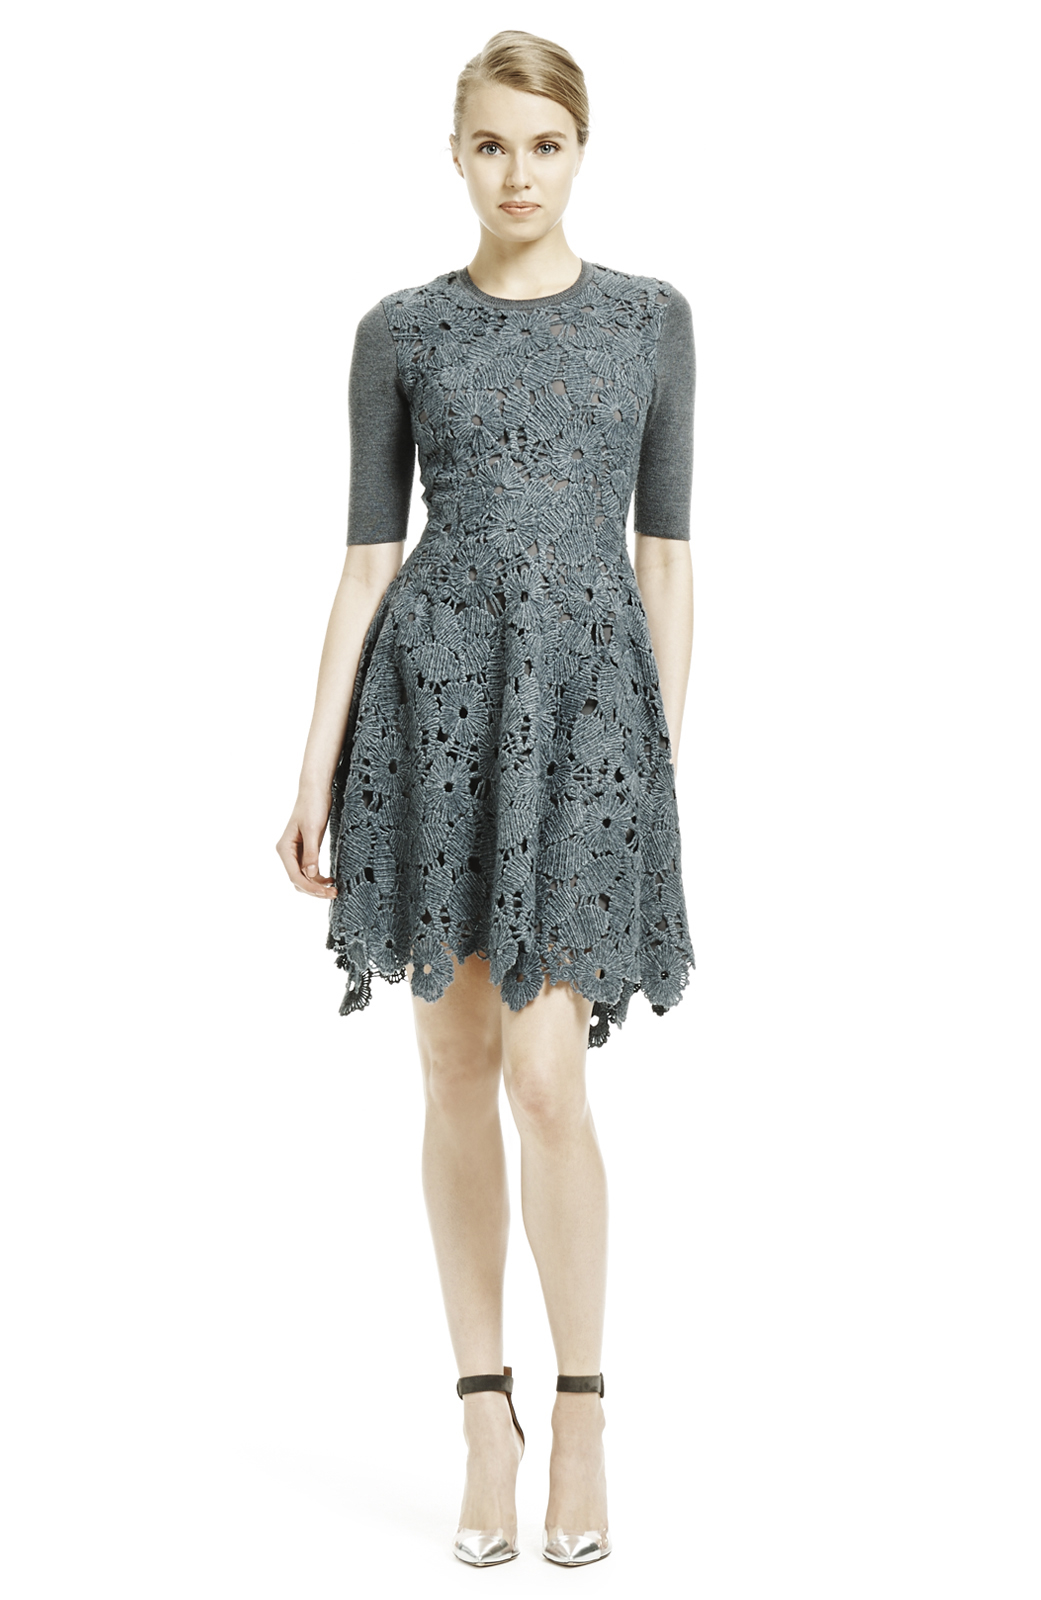 Lela rose grey dress